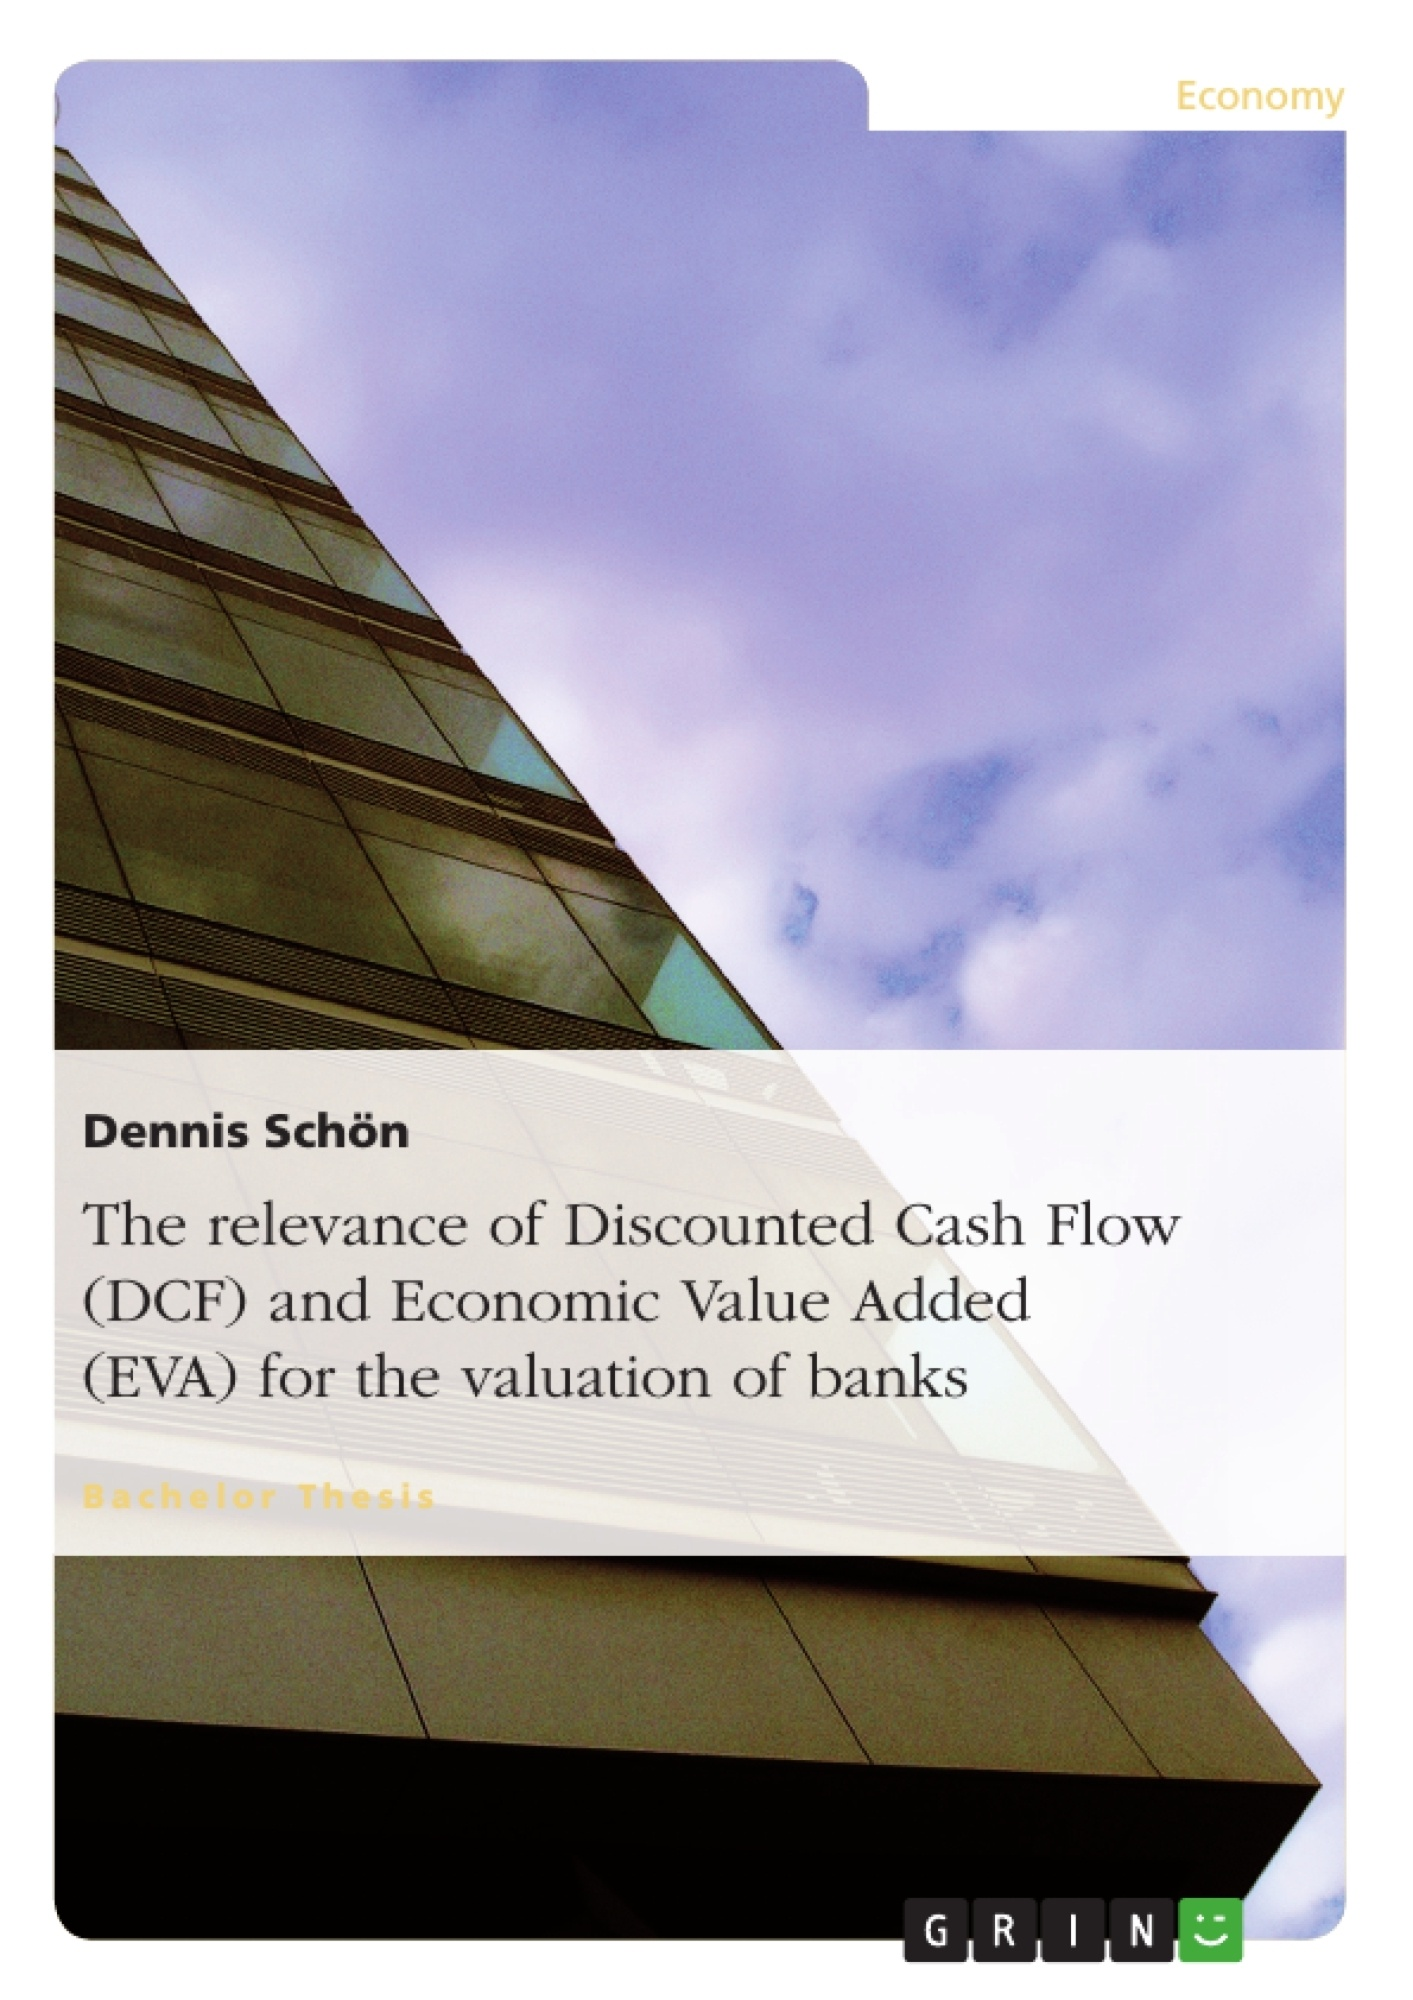 thesis on economic value added Discounted cash-flow and economic value added methods in corporate valuation bachelor's thesis of degree program in international business, 58 pages, 6 pages of appendices spring 2013 abstract this thesis introduces and compares the two most popular valuation methods in corporate finance: dcf and eva.